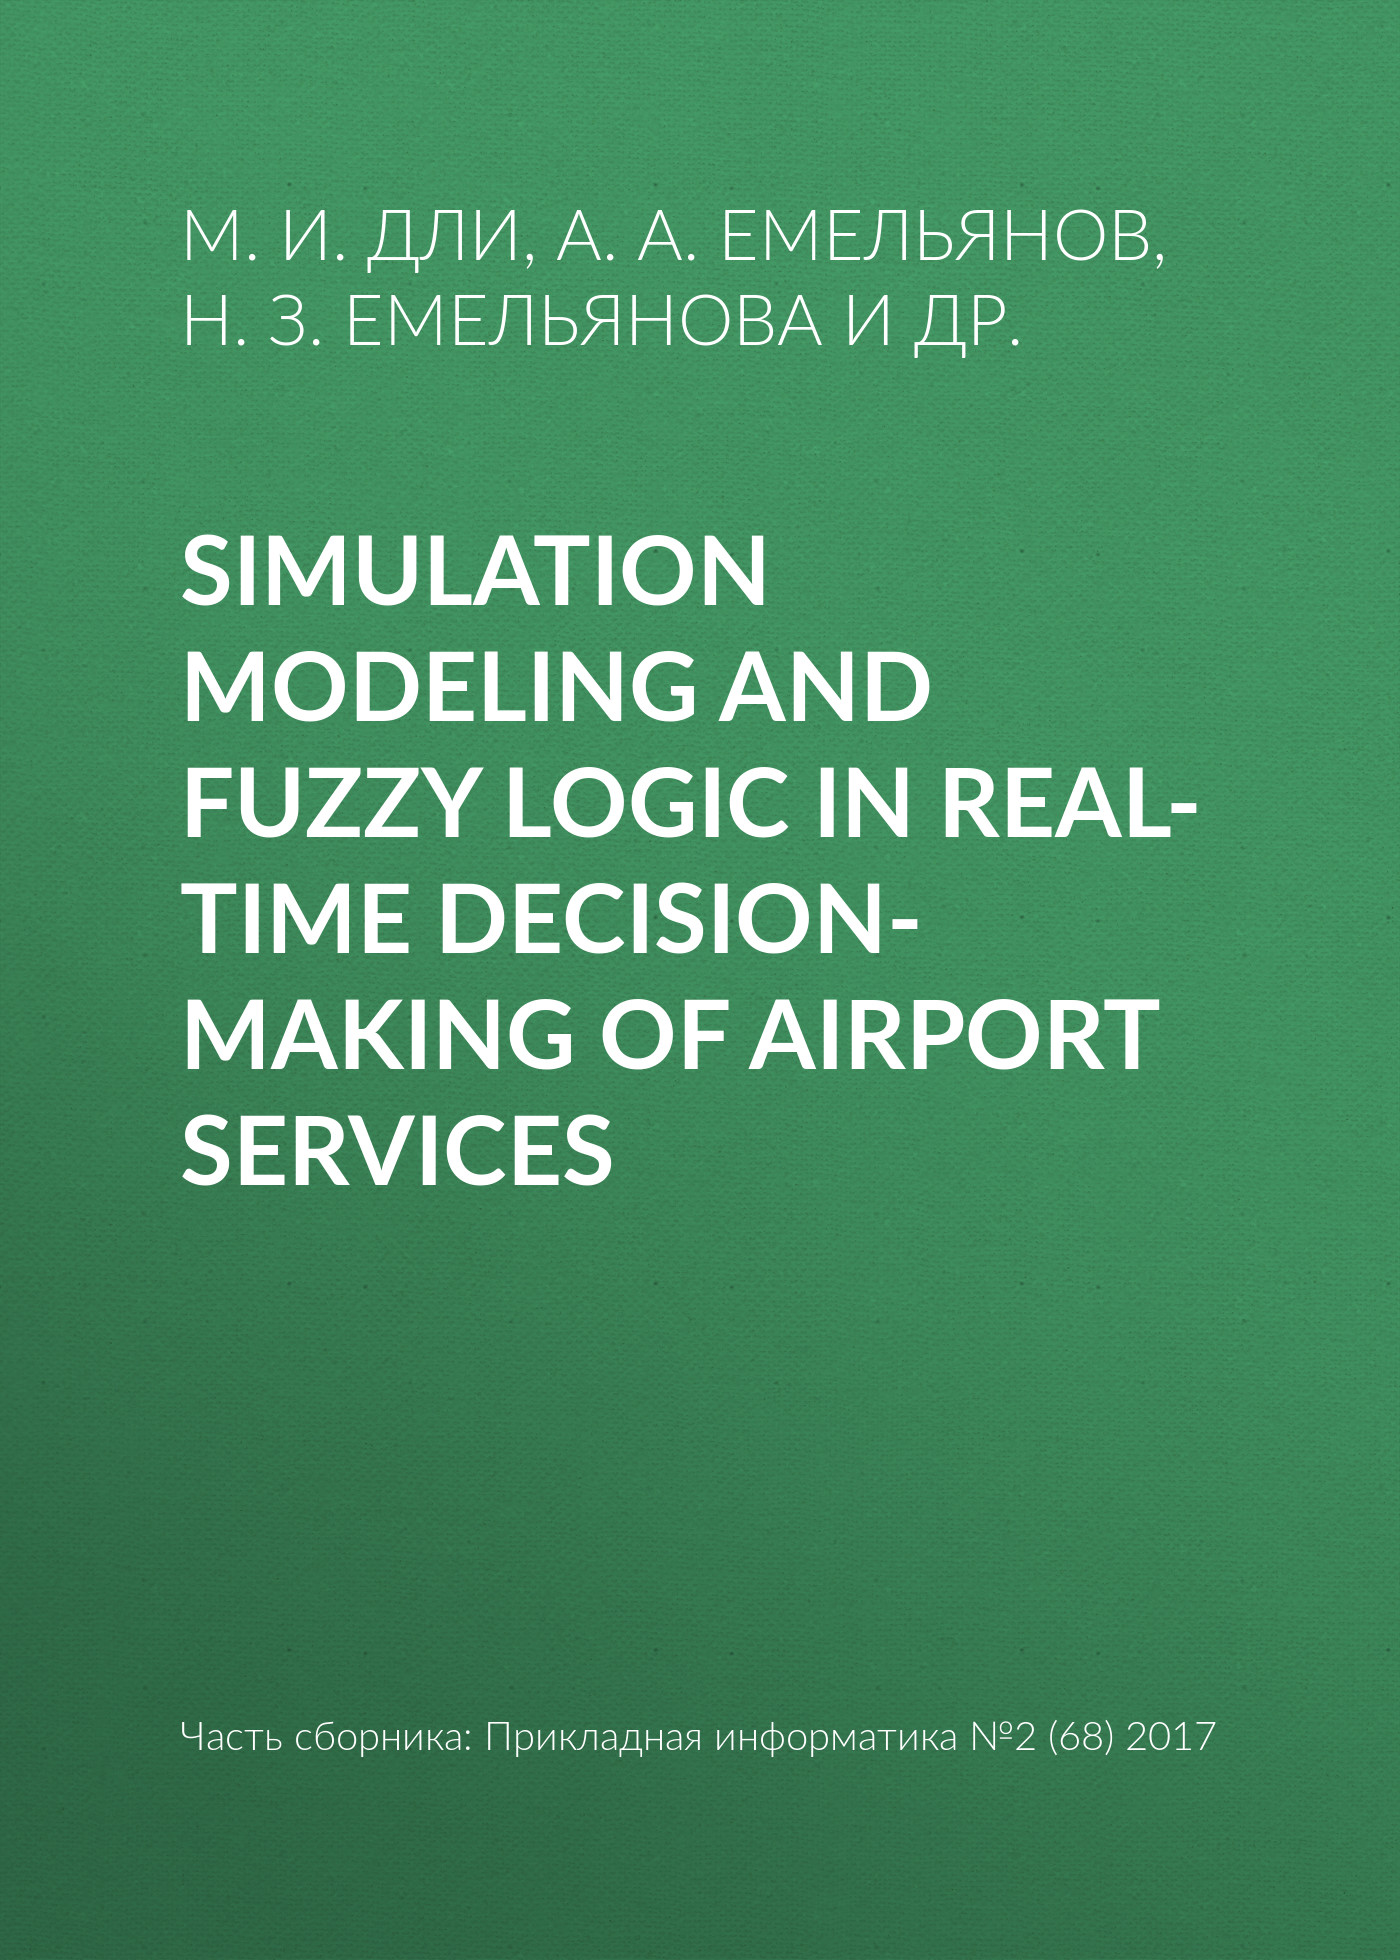 Н. З. Емельянова Simulation modeling and fuzzy logic in real-time decision-making of airport services article